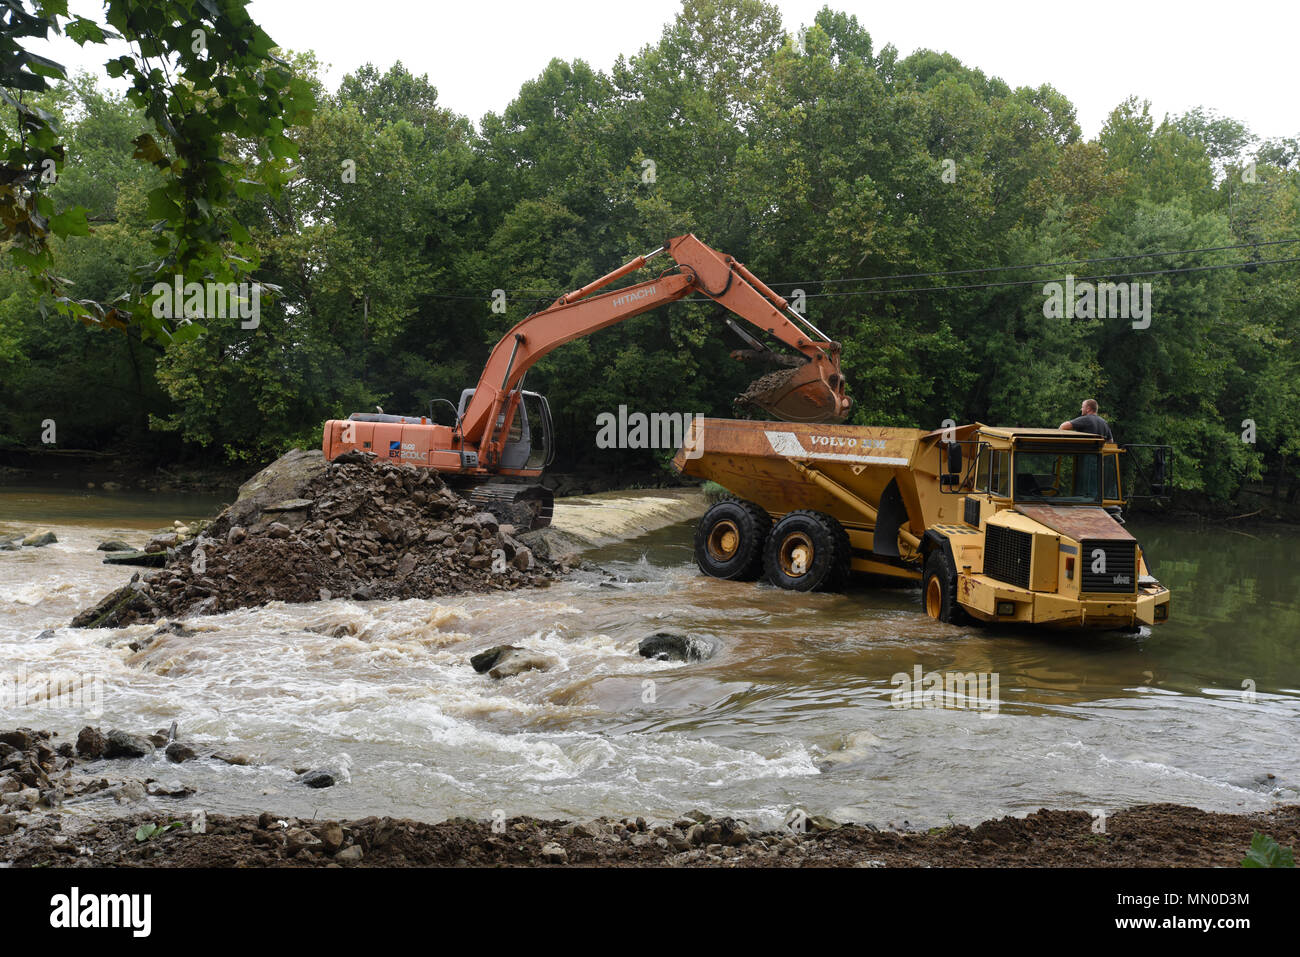 An excavator loads a dump truck with concrete, rock and soil from Roaring River Dam in Jackson County, Tennessee Aug. 1, 2017. The Tennessee Wildlife Resources Agency is removing the dam, built in 1976 by the U.S. Army Corps of Engineers Nashville District.  The dam in Jackson County, Tennessee was at risk of failure and the Corps of Engineers determined that it would be better to remove the dam as it was no longer needed as a fish barrier on the Cumberland River tributary.  Partners in the joint effort to remove the dam include TWRA, Corps of Engineers, The Nature Conservancy, U.S. Fish and W - Stock Image